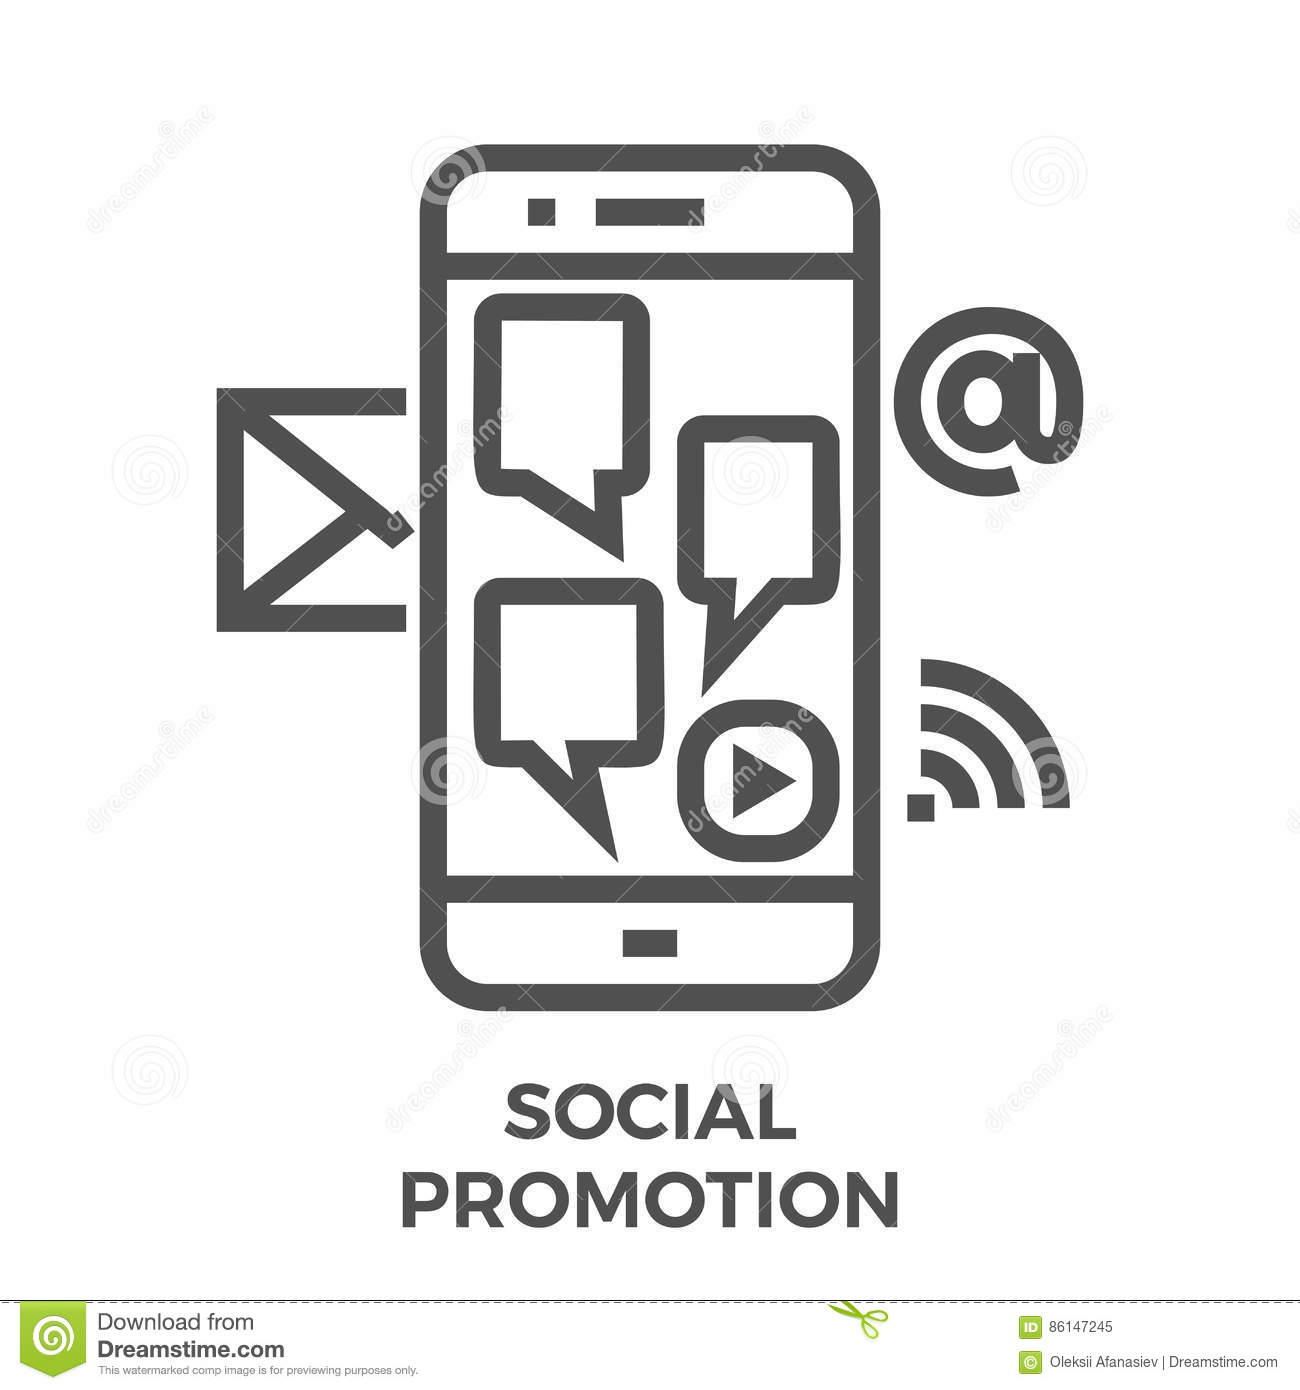 Social Promotion line icon